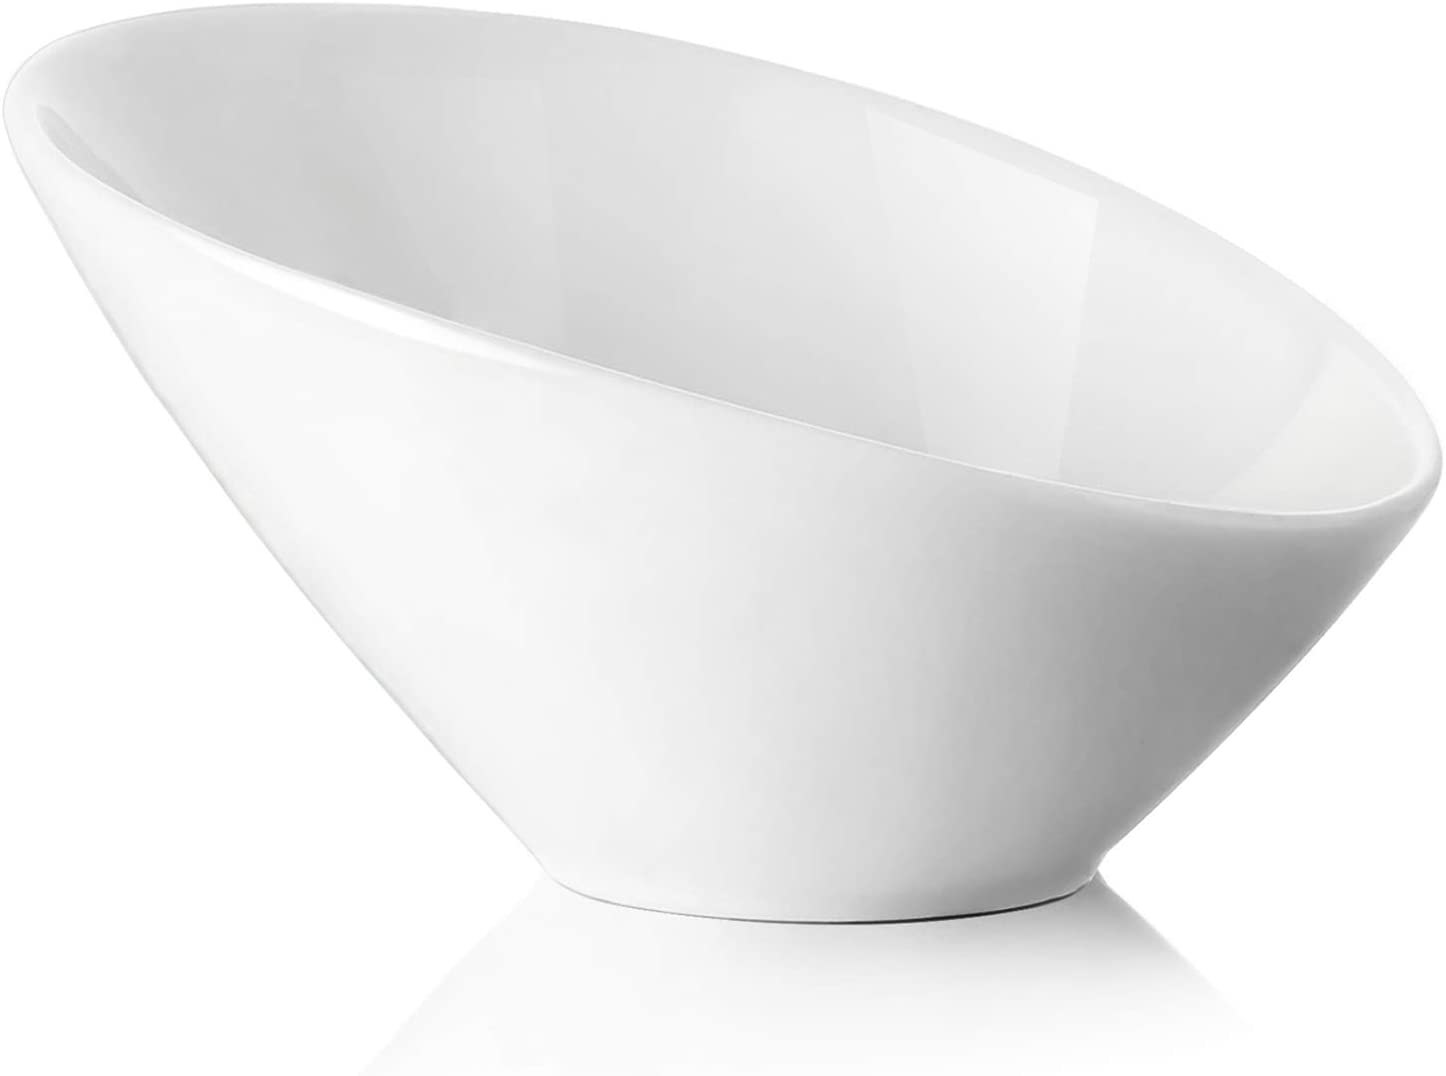 DOWAN 26-Ounce Ceramic Angled Salad Serving Bowl, 2-Pack